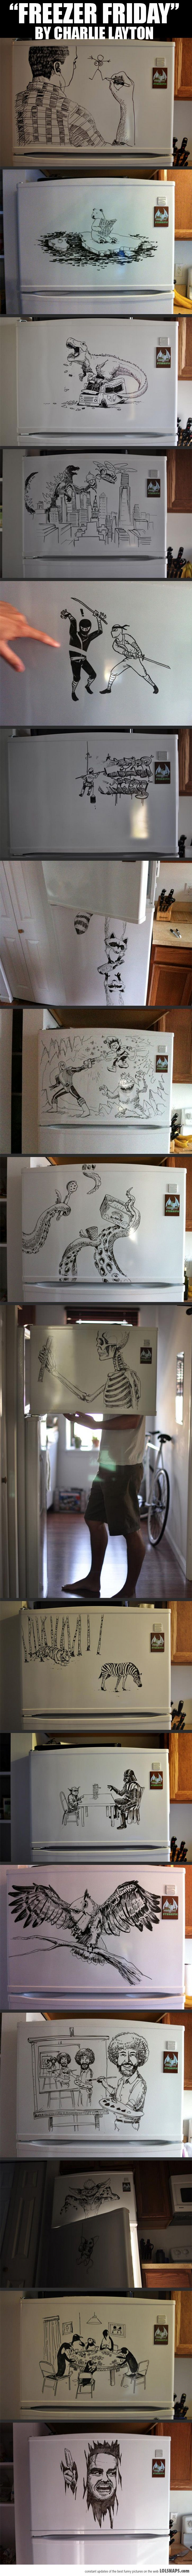 Epic Drawings On The Freezer Door by Charlie Layton